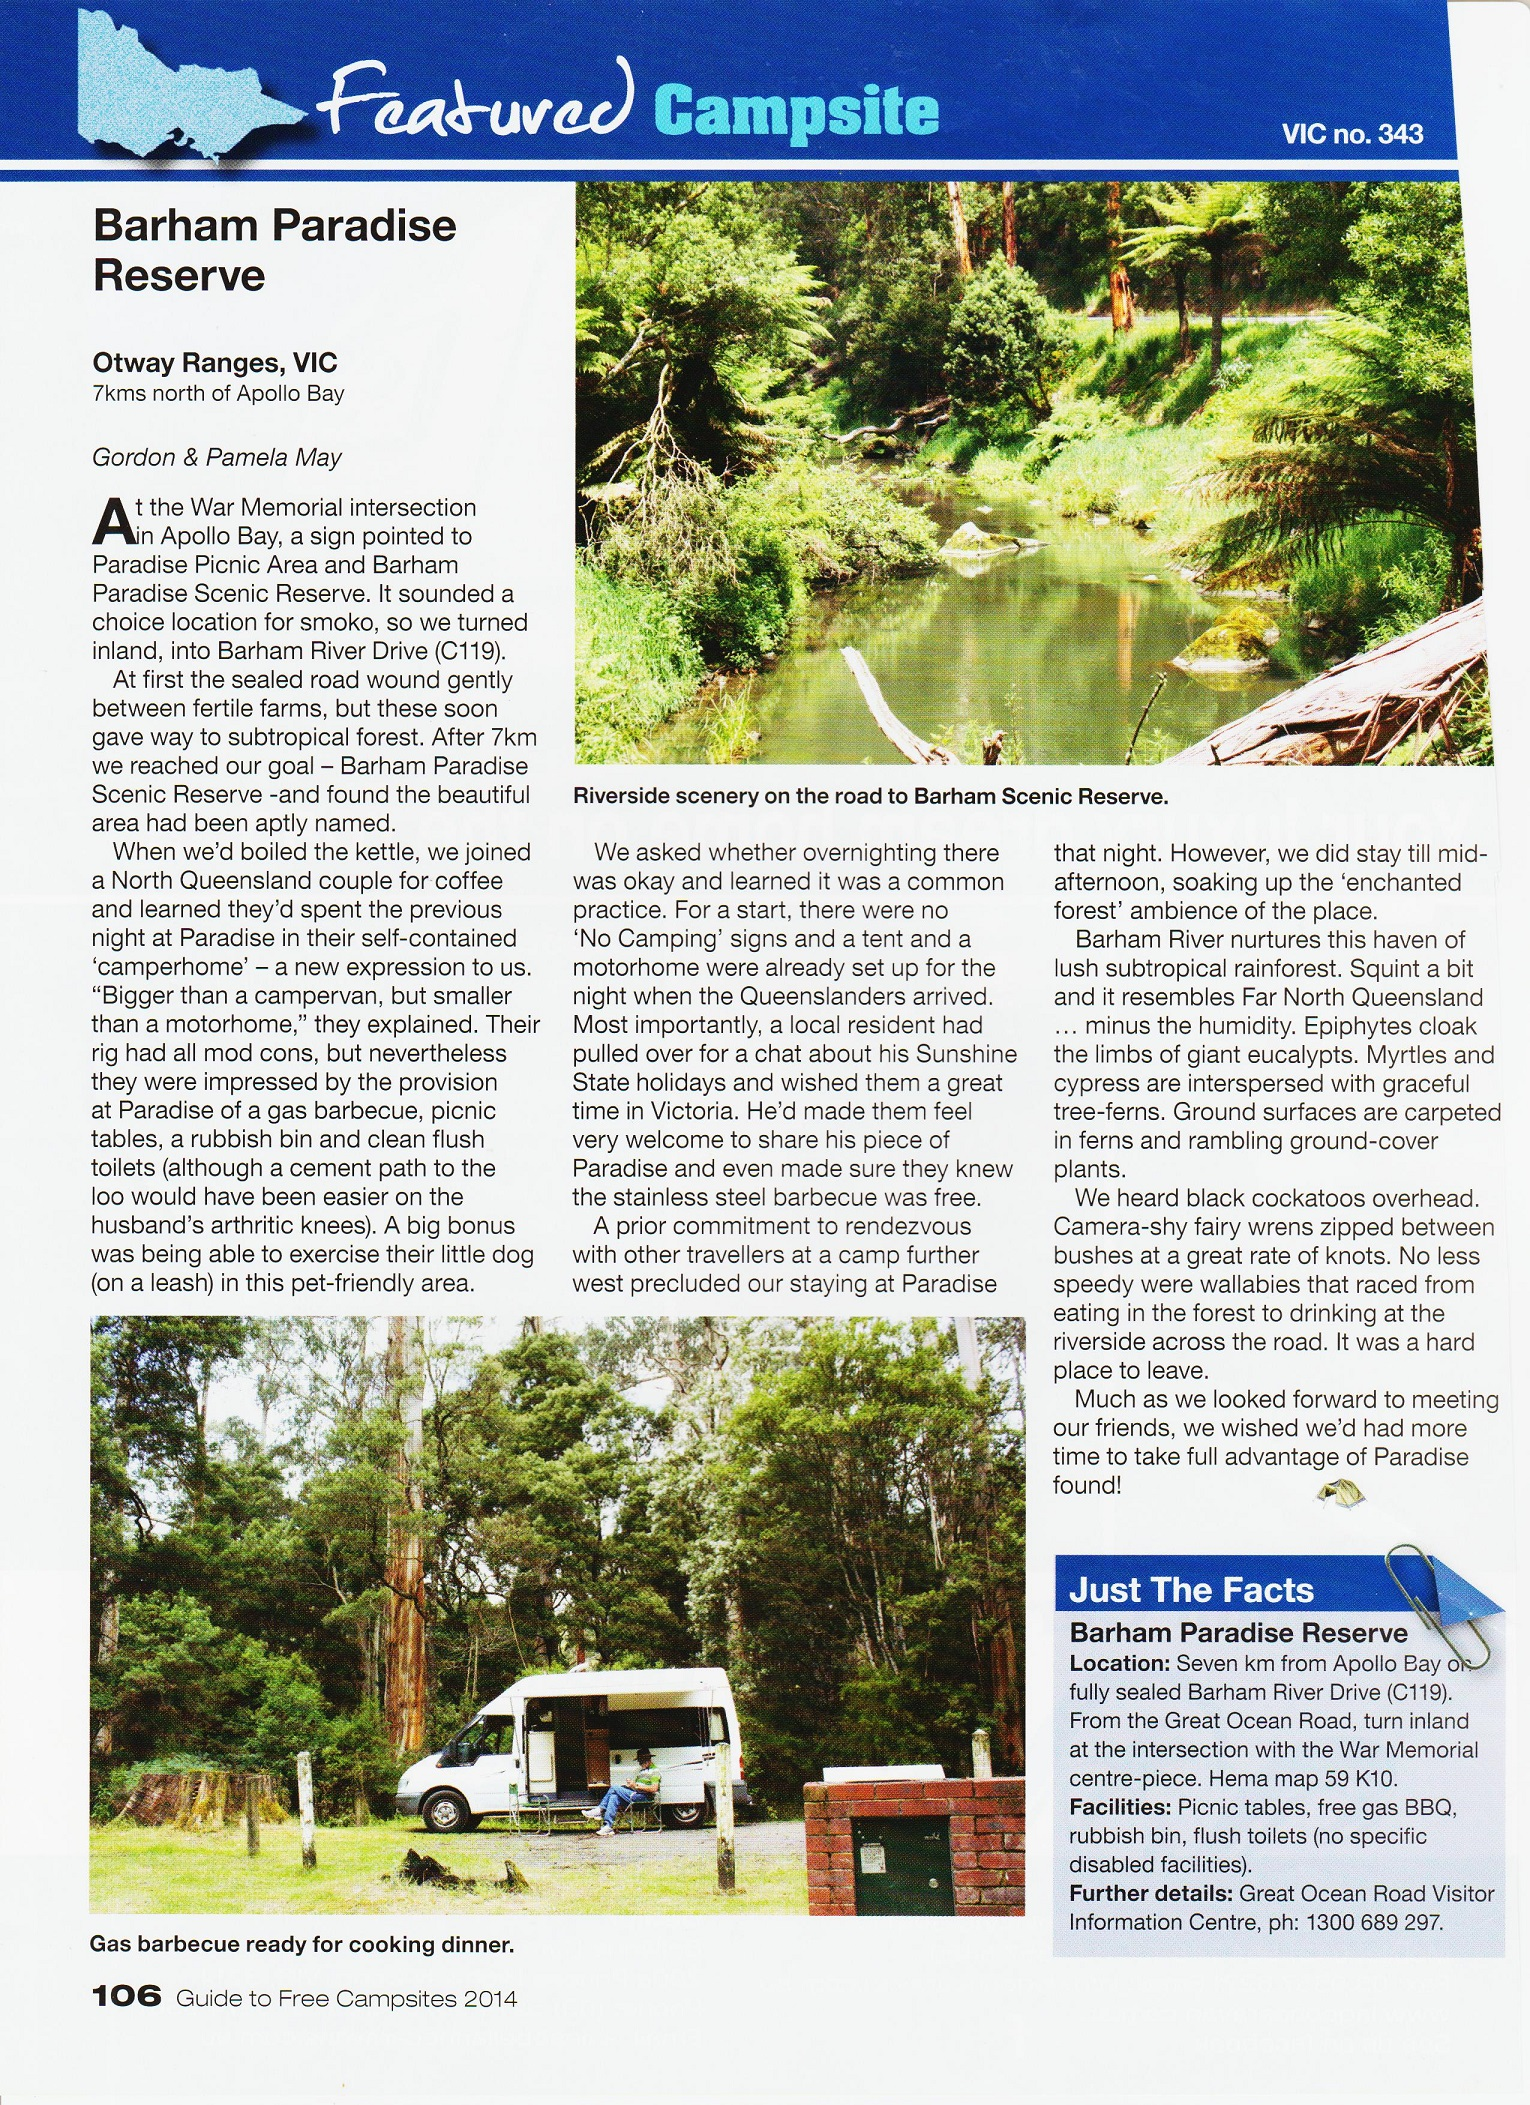 Barham Paradise Reserve campsite – Memoirs and Travels of Gordon and Pam